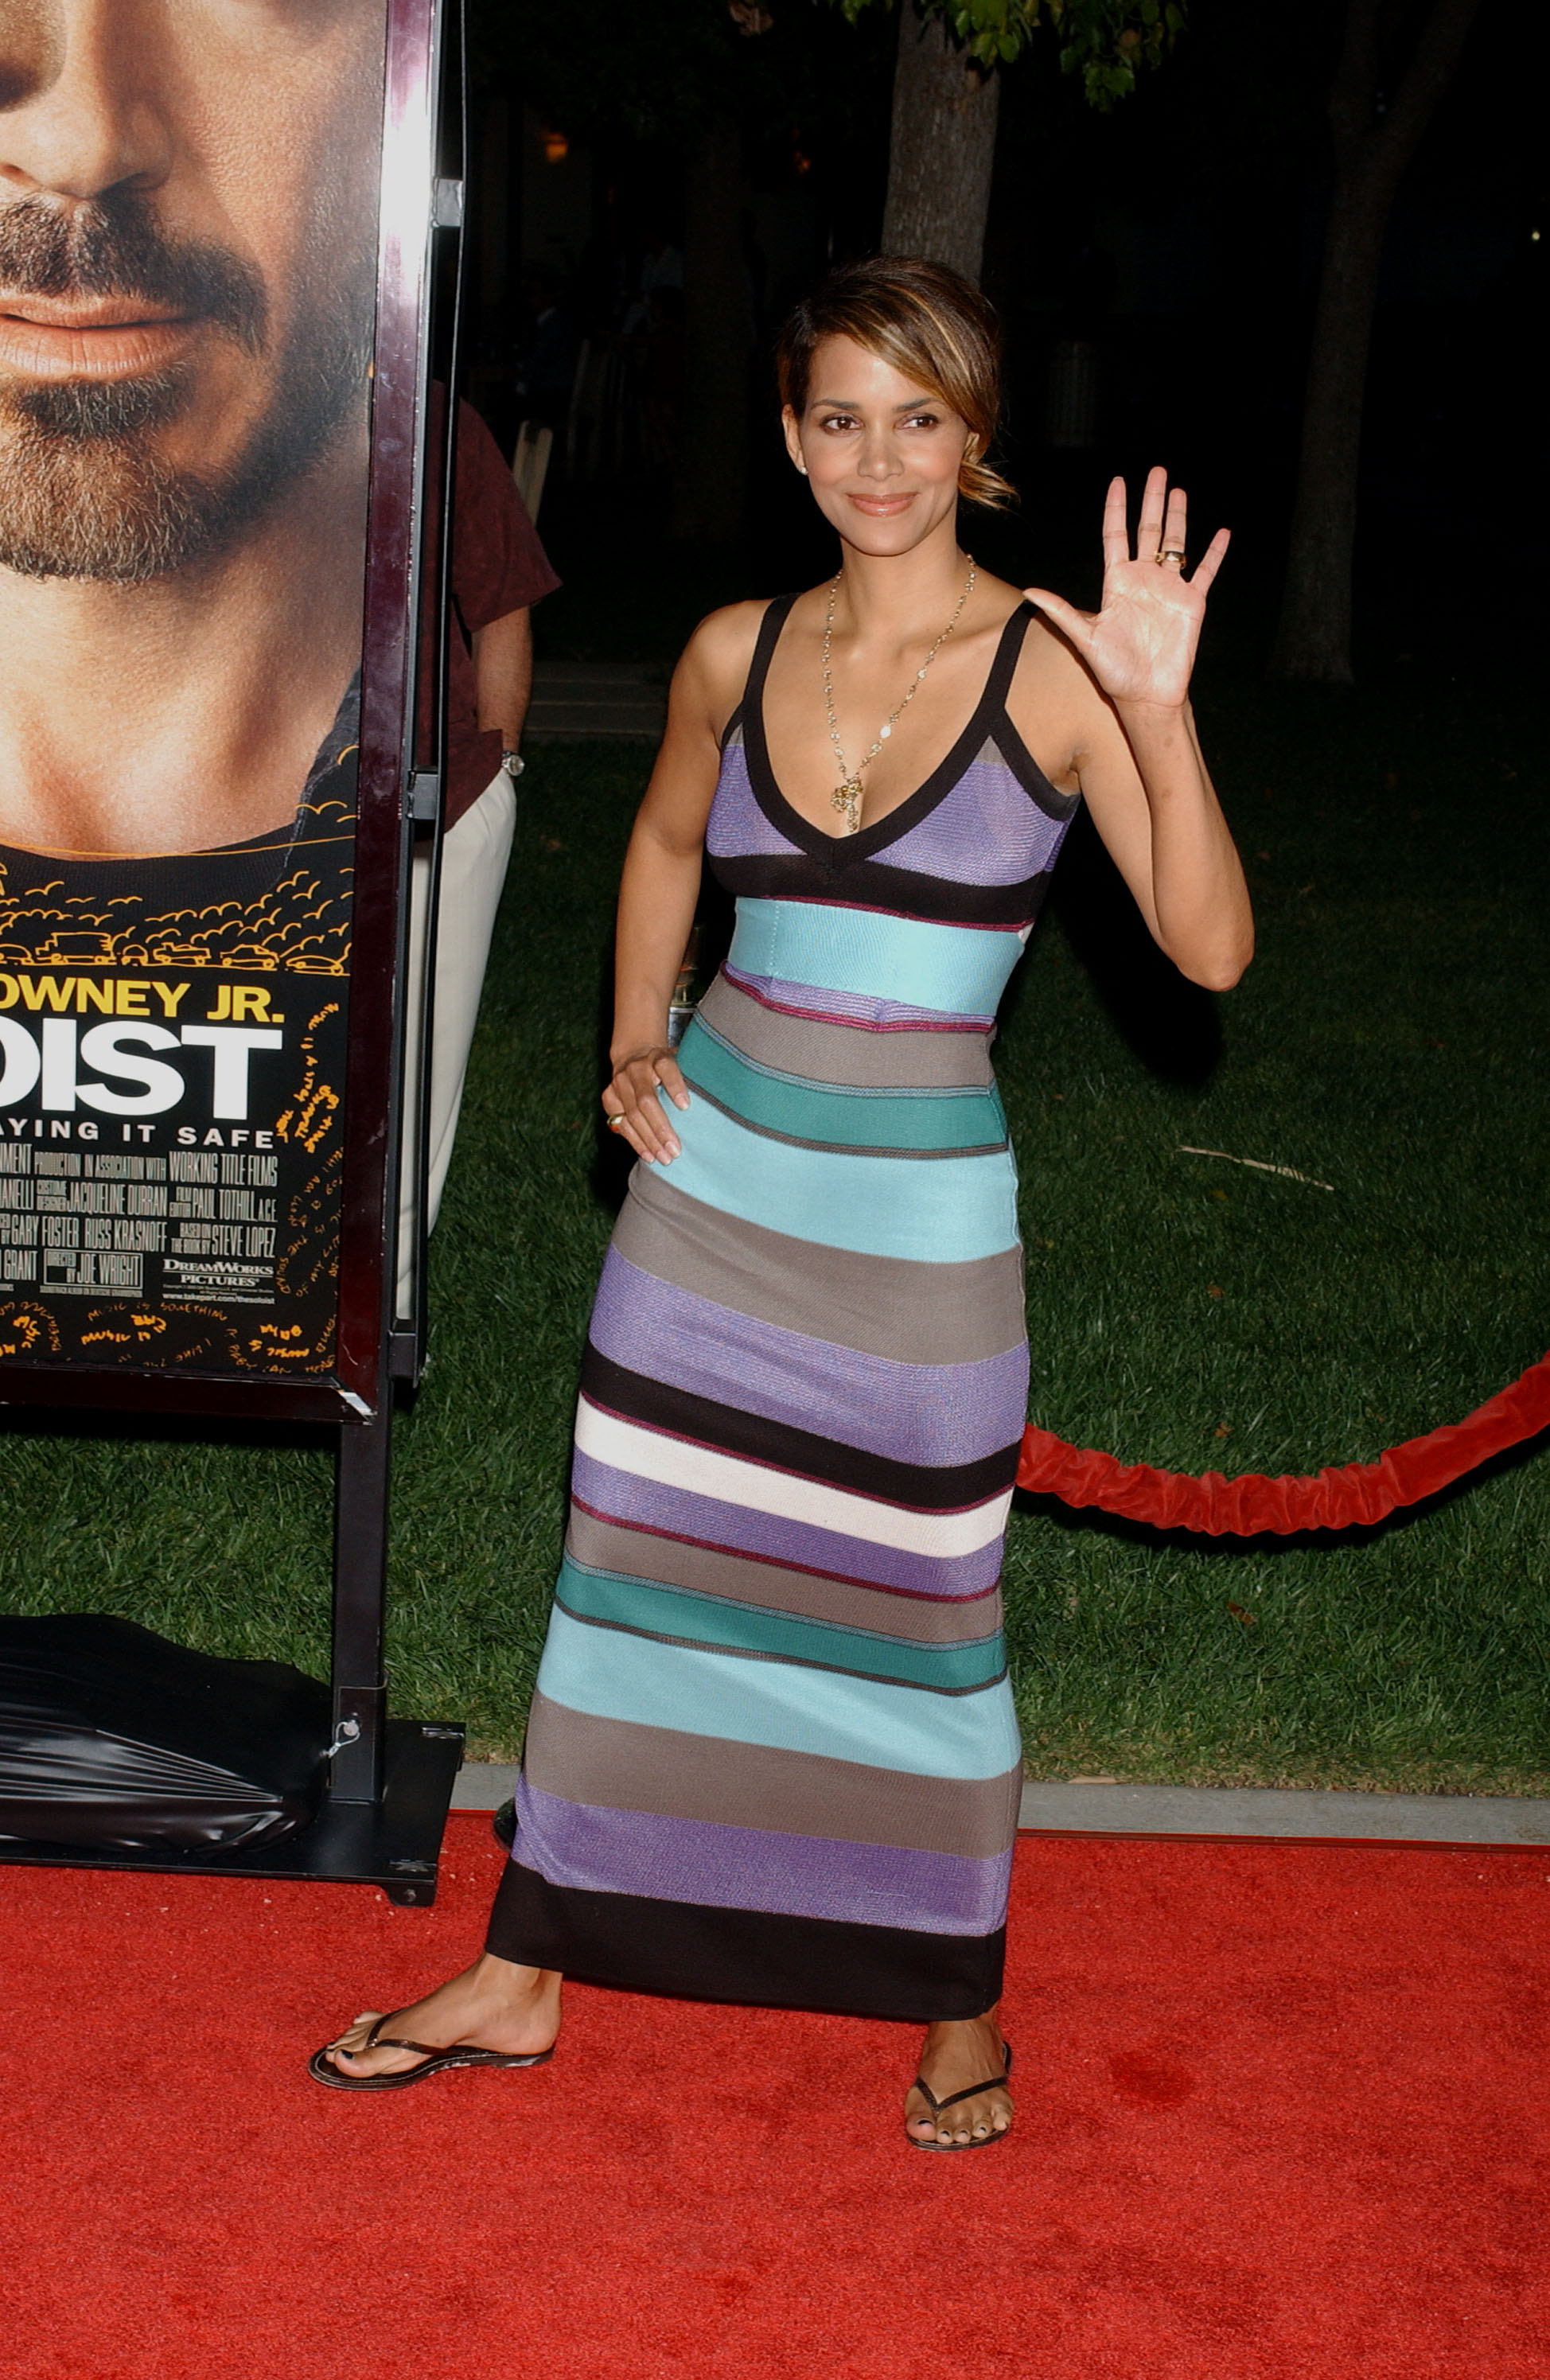 65813_Halle_Berry_The_Soloist_premiere_in_Los_Angeles_61_122_201lo.jpg